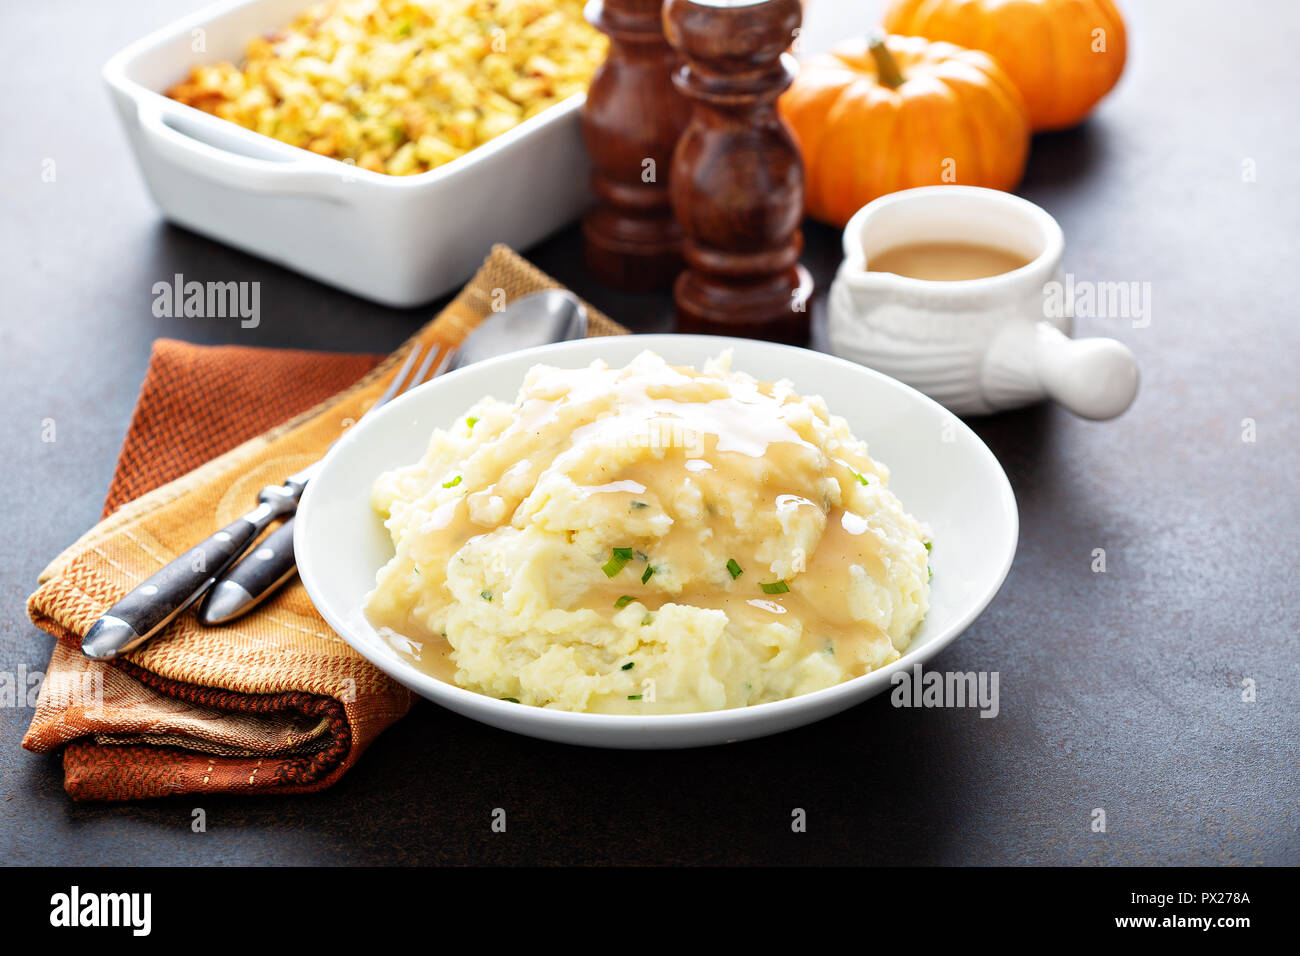 Mashed potatoes with gravy, traditional side dish for Thanksgiving - Stock Image